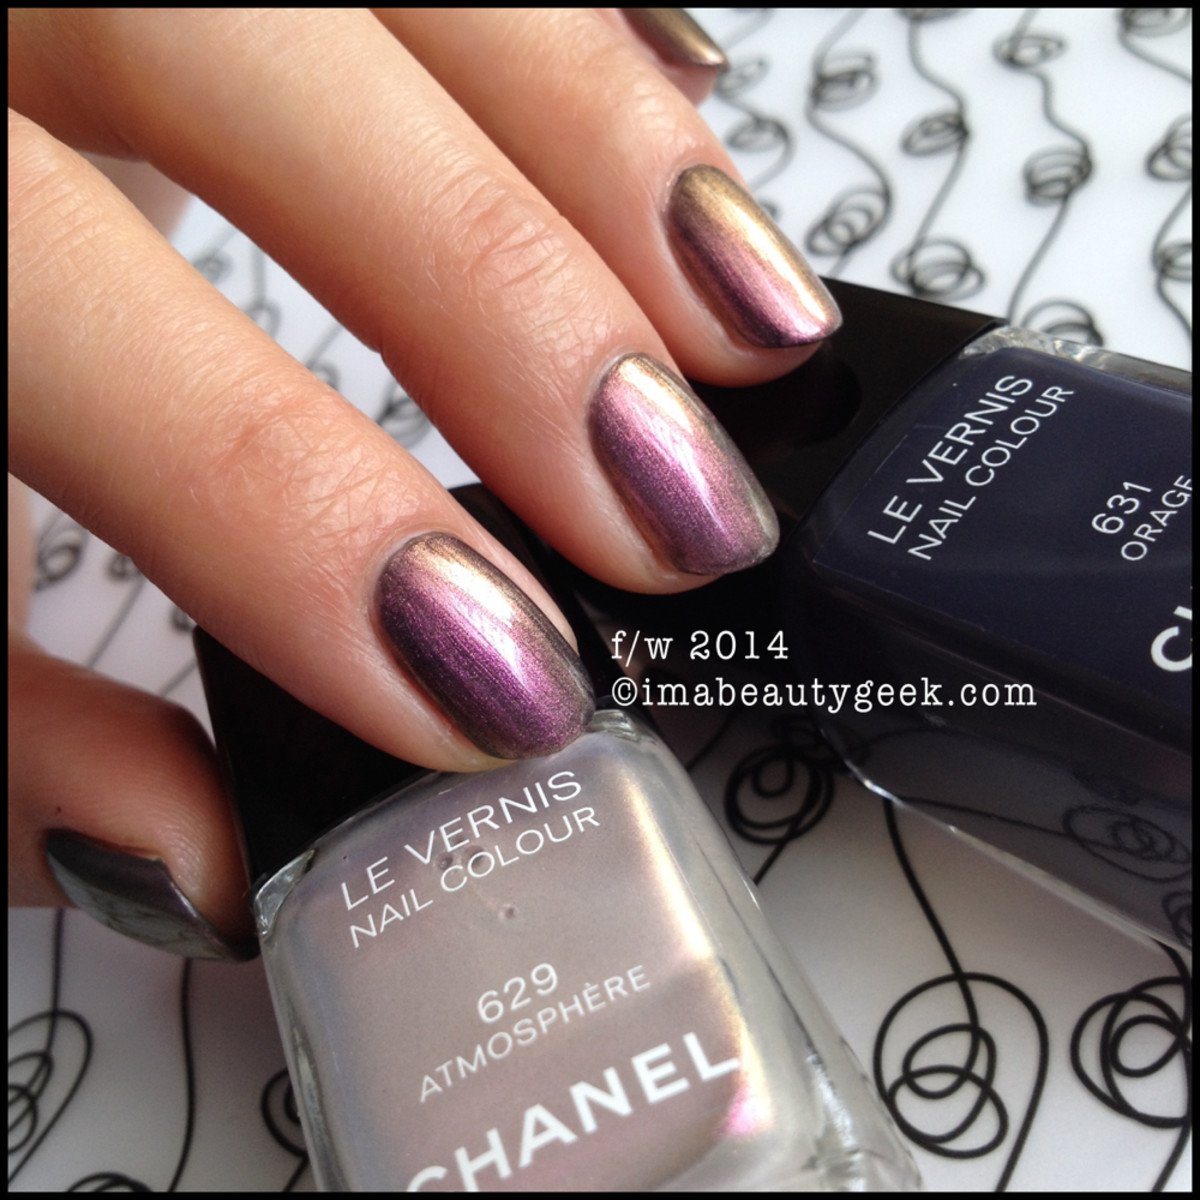 Chanel Atmosphere 629 w Chanel Orage 631 beautygeeks